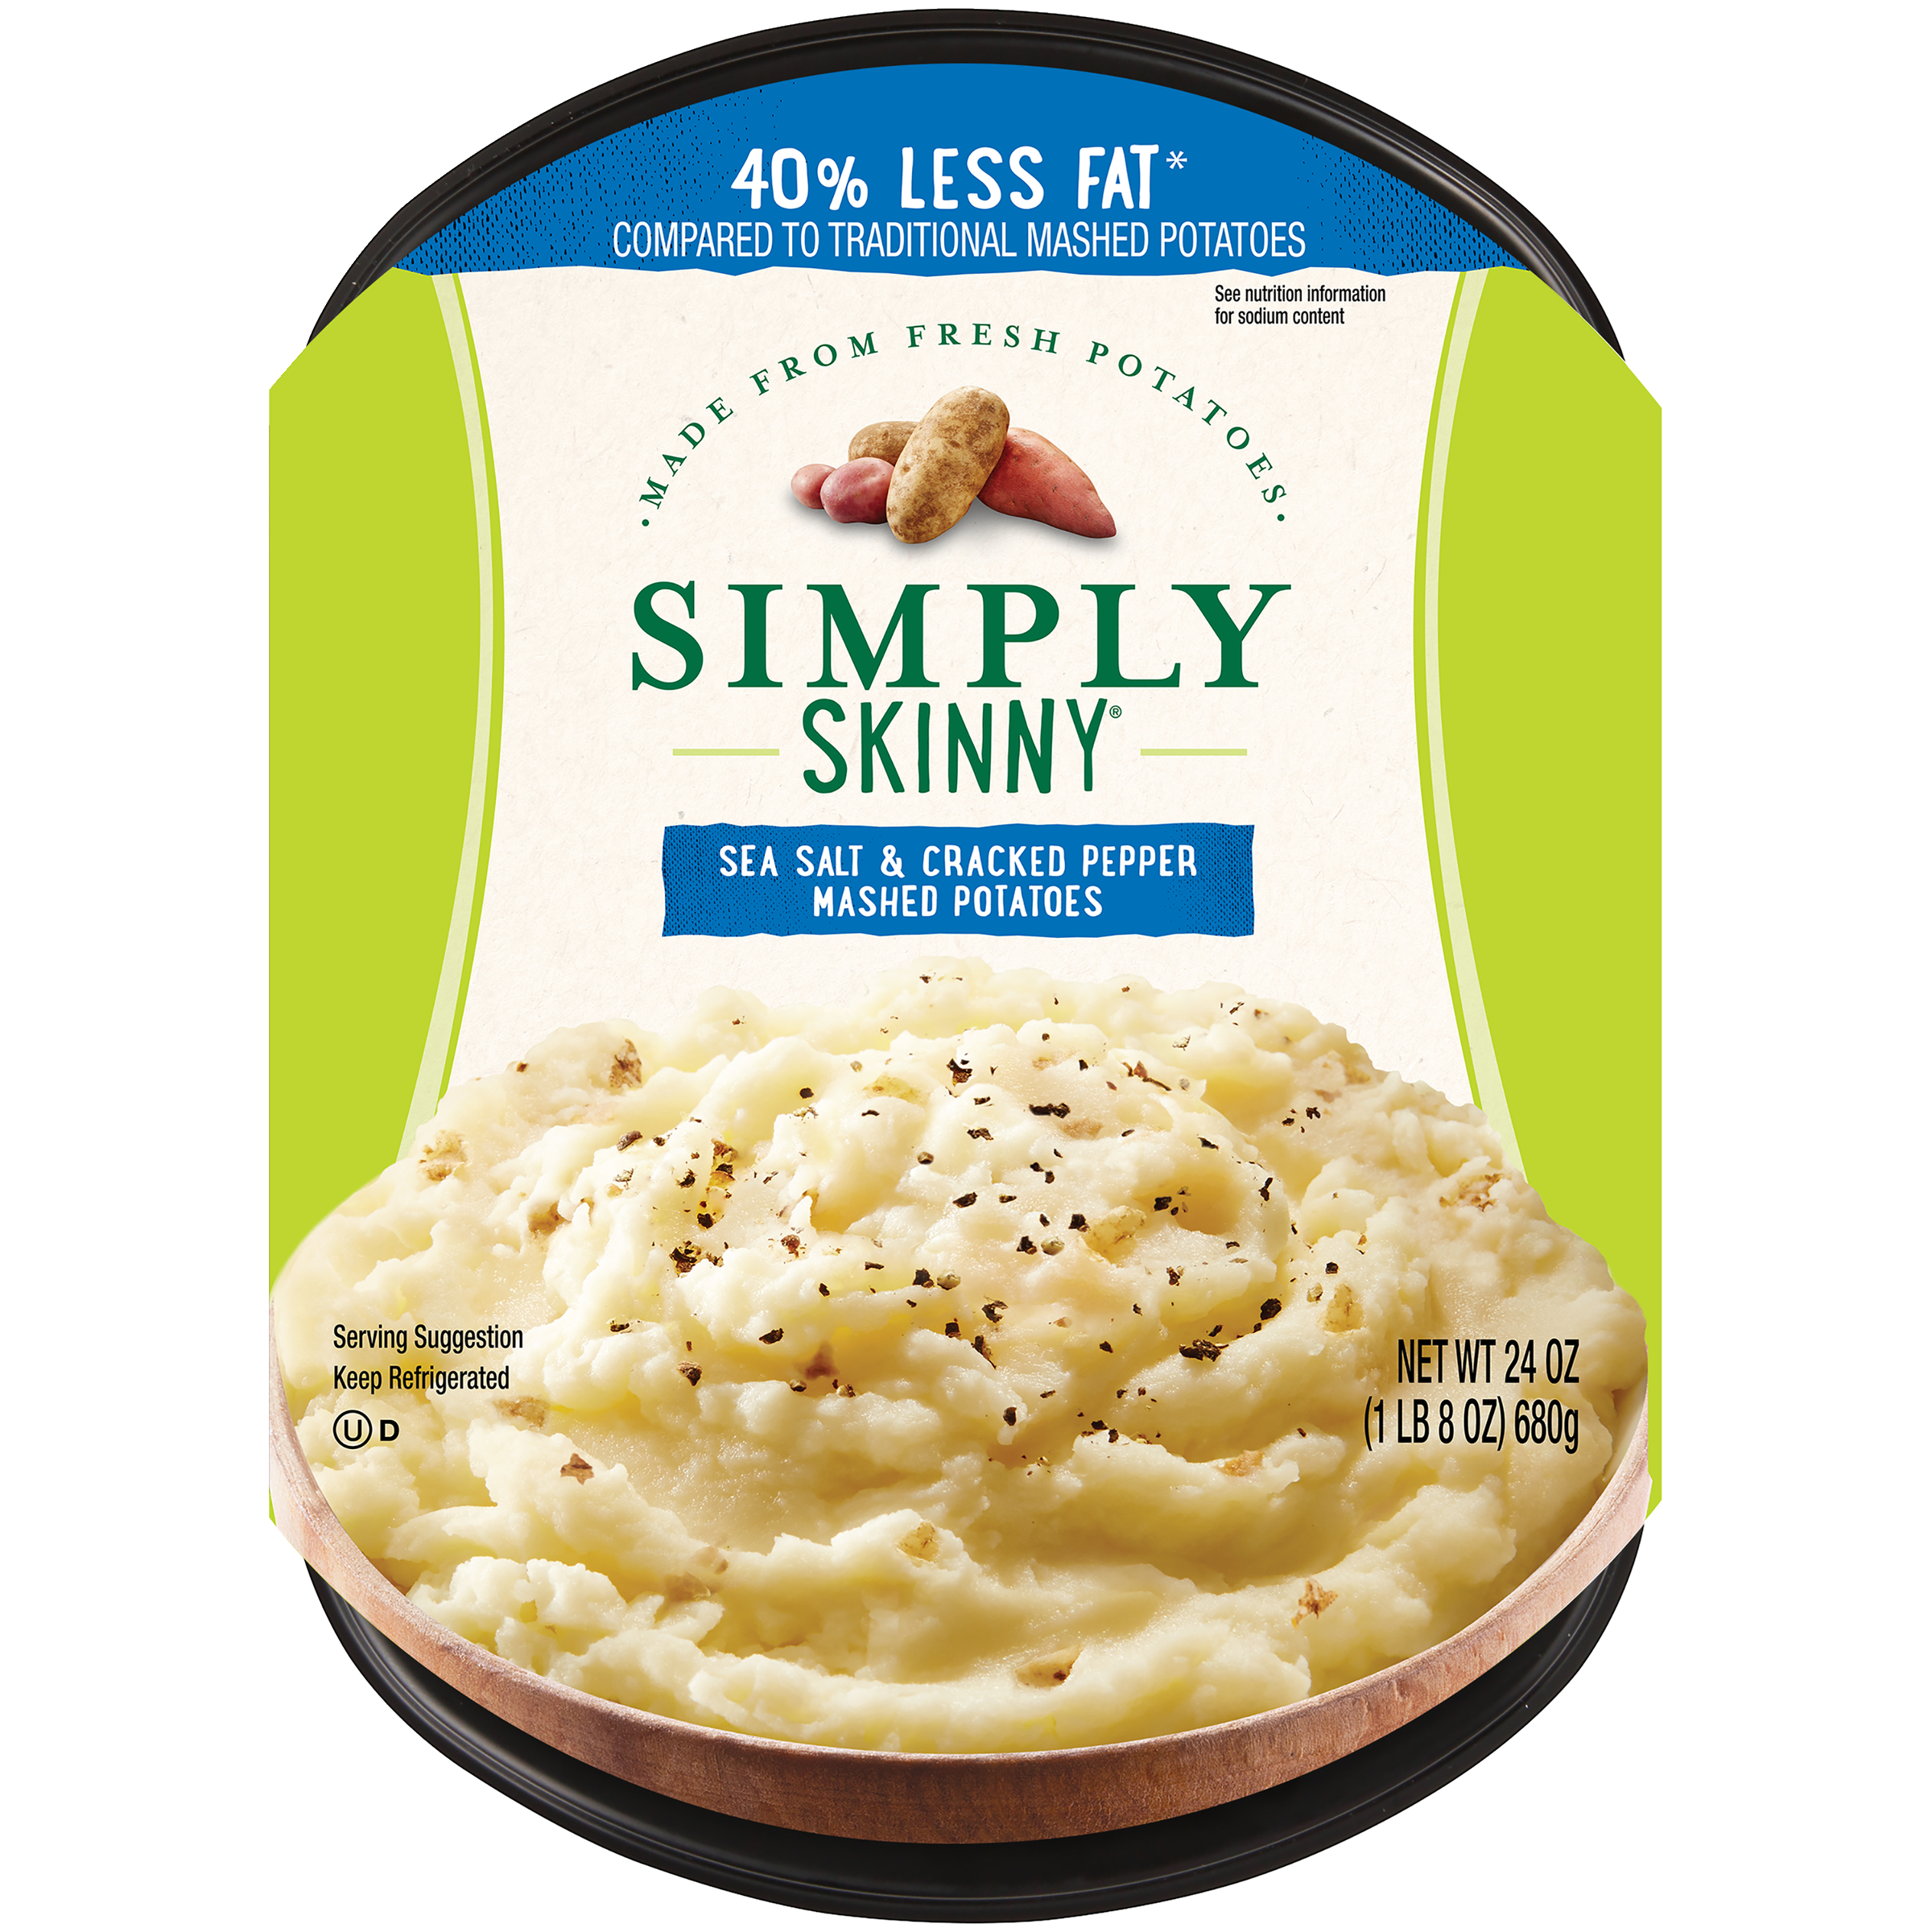 photo of Simply Skinny Sea Salt & Cracked Pepper Mashed Potatoes product